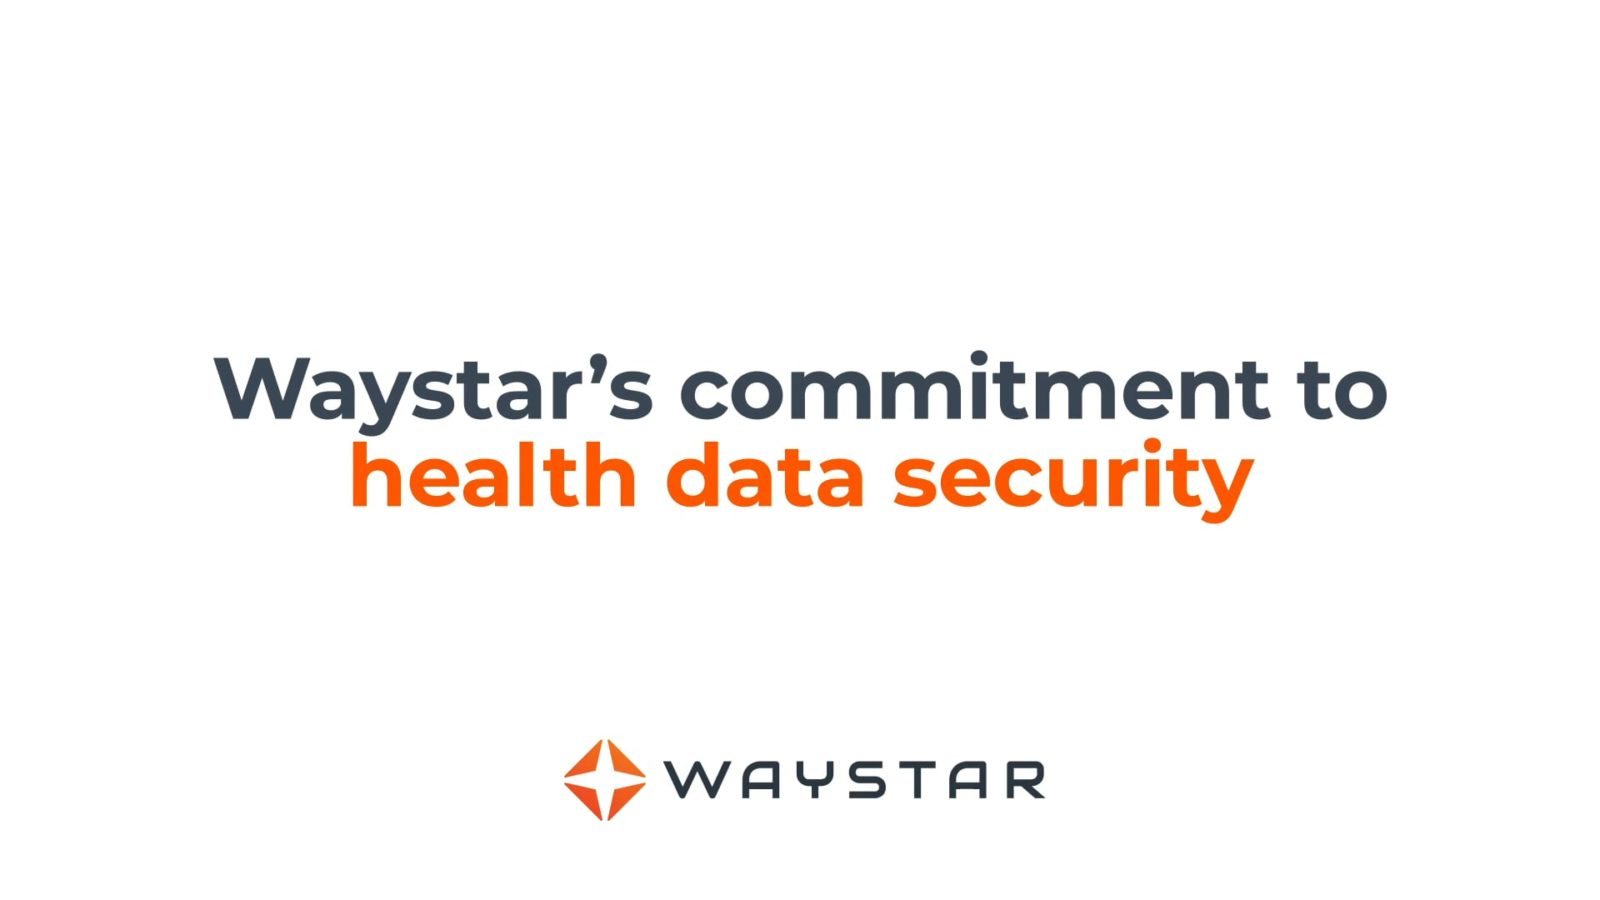 Waystar's commitment to data security